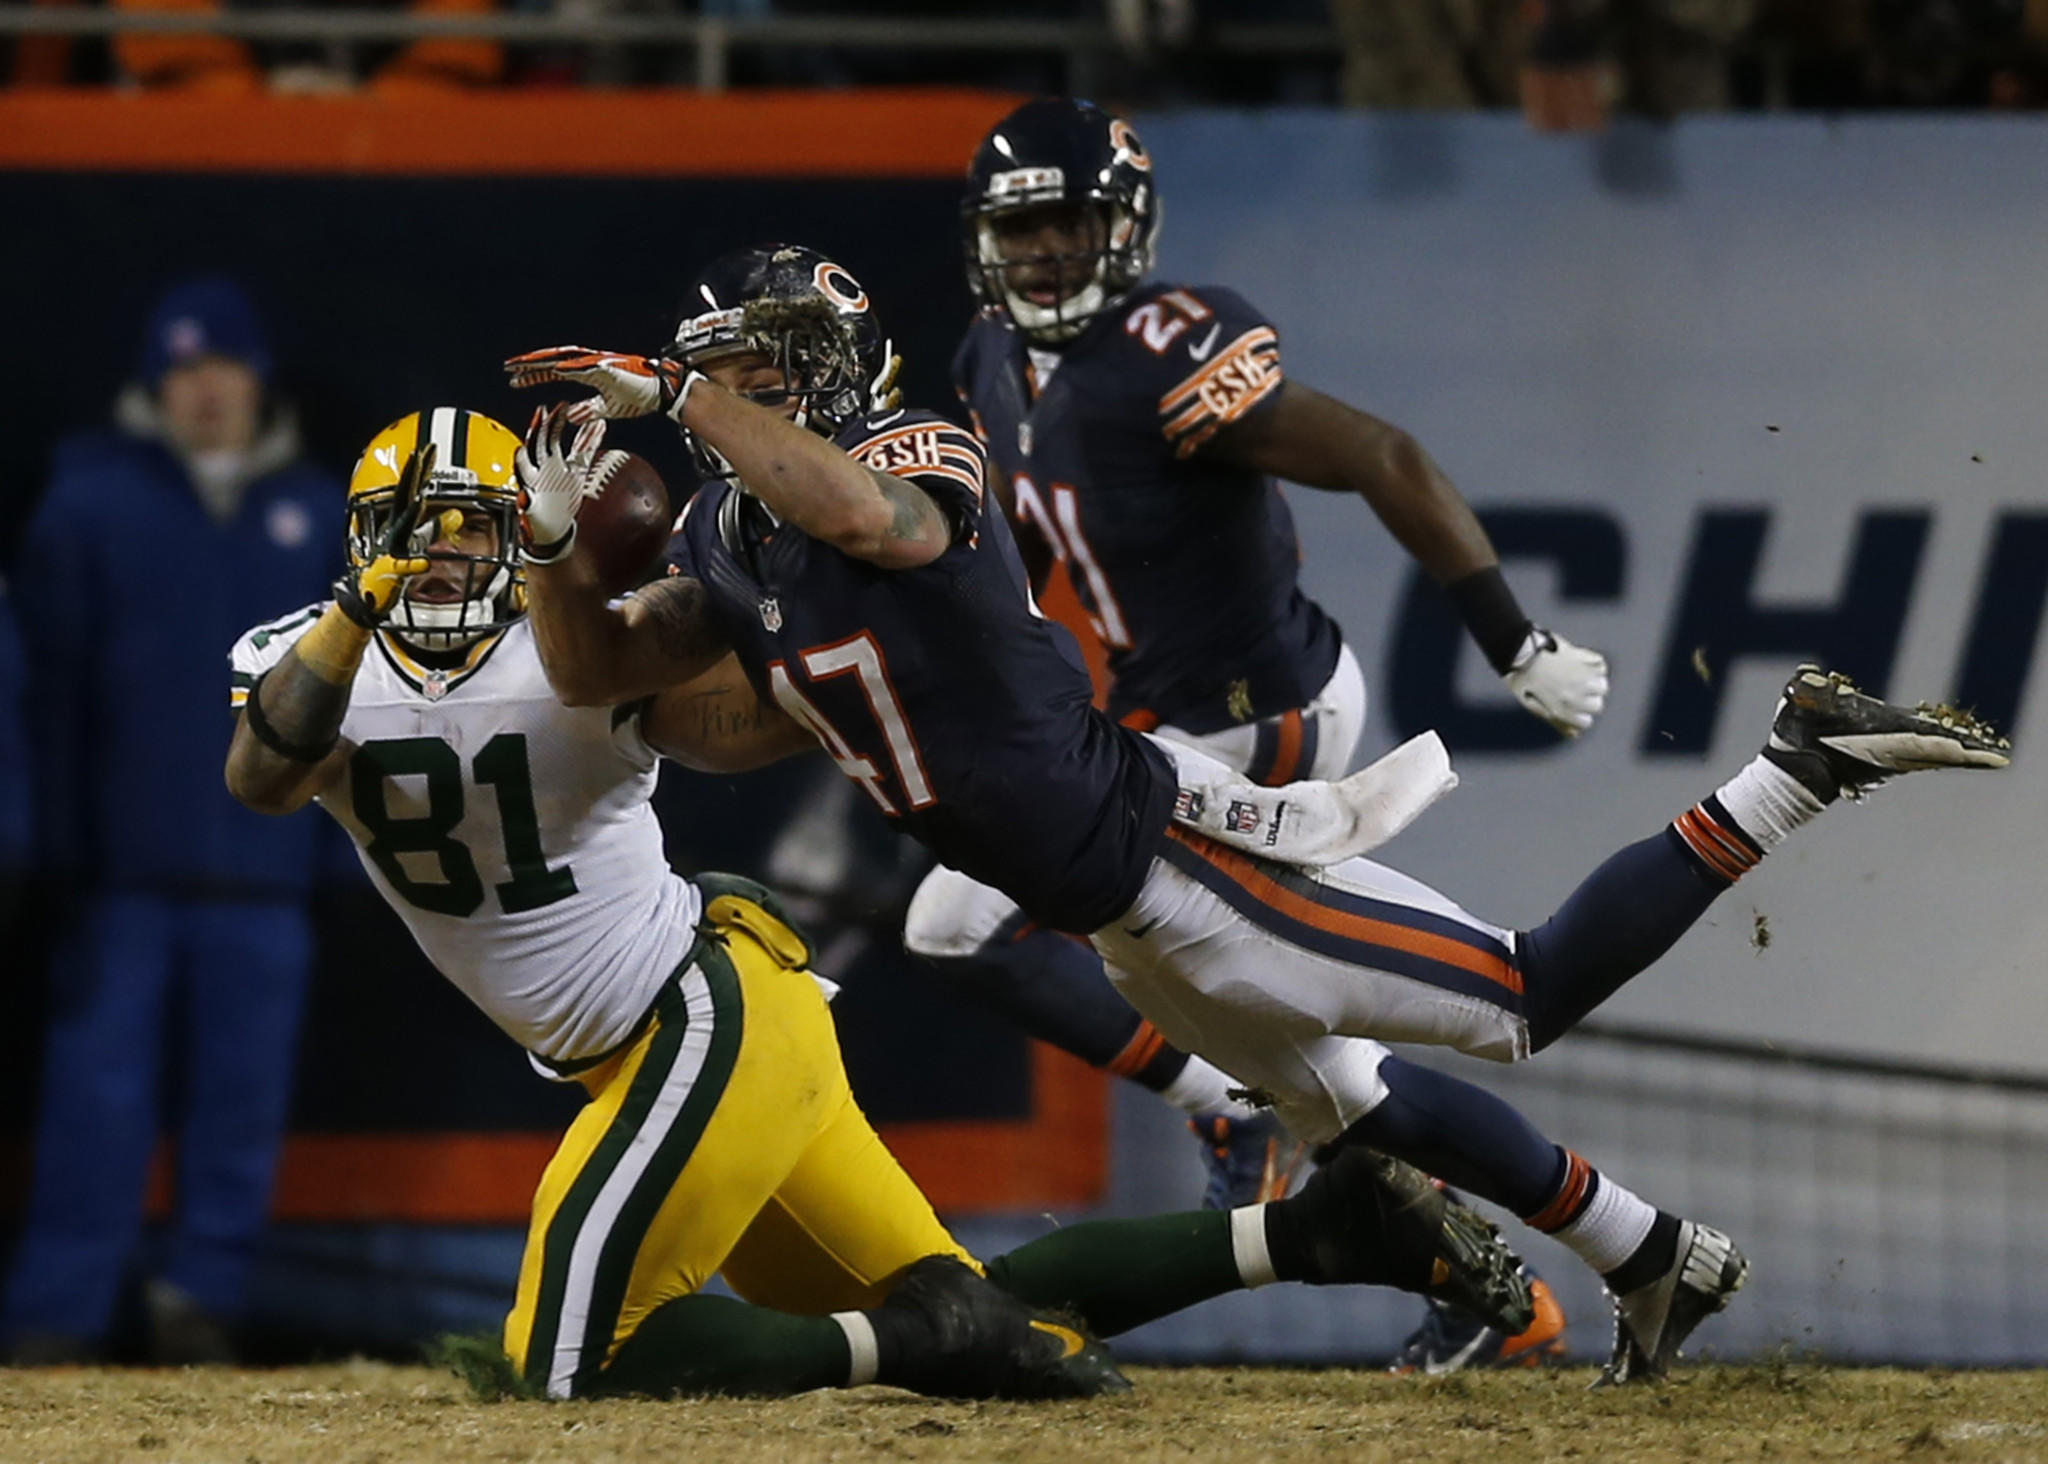 Chris Conte lets a pass slip through his hands and into those of the Packers' Andrew Quarless in the 4th quarter.